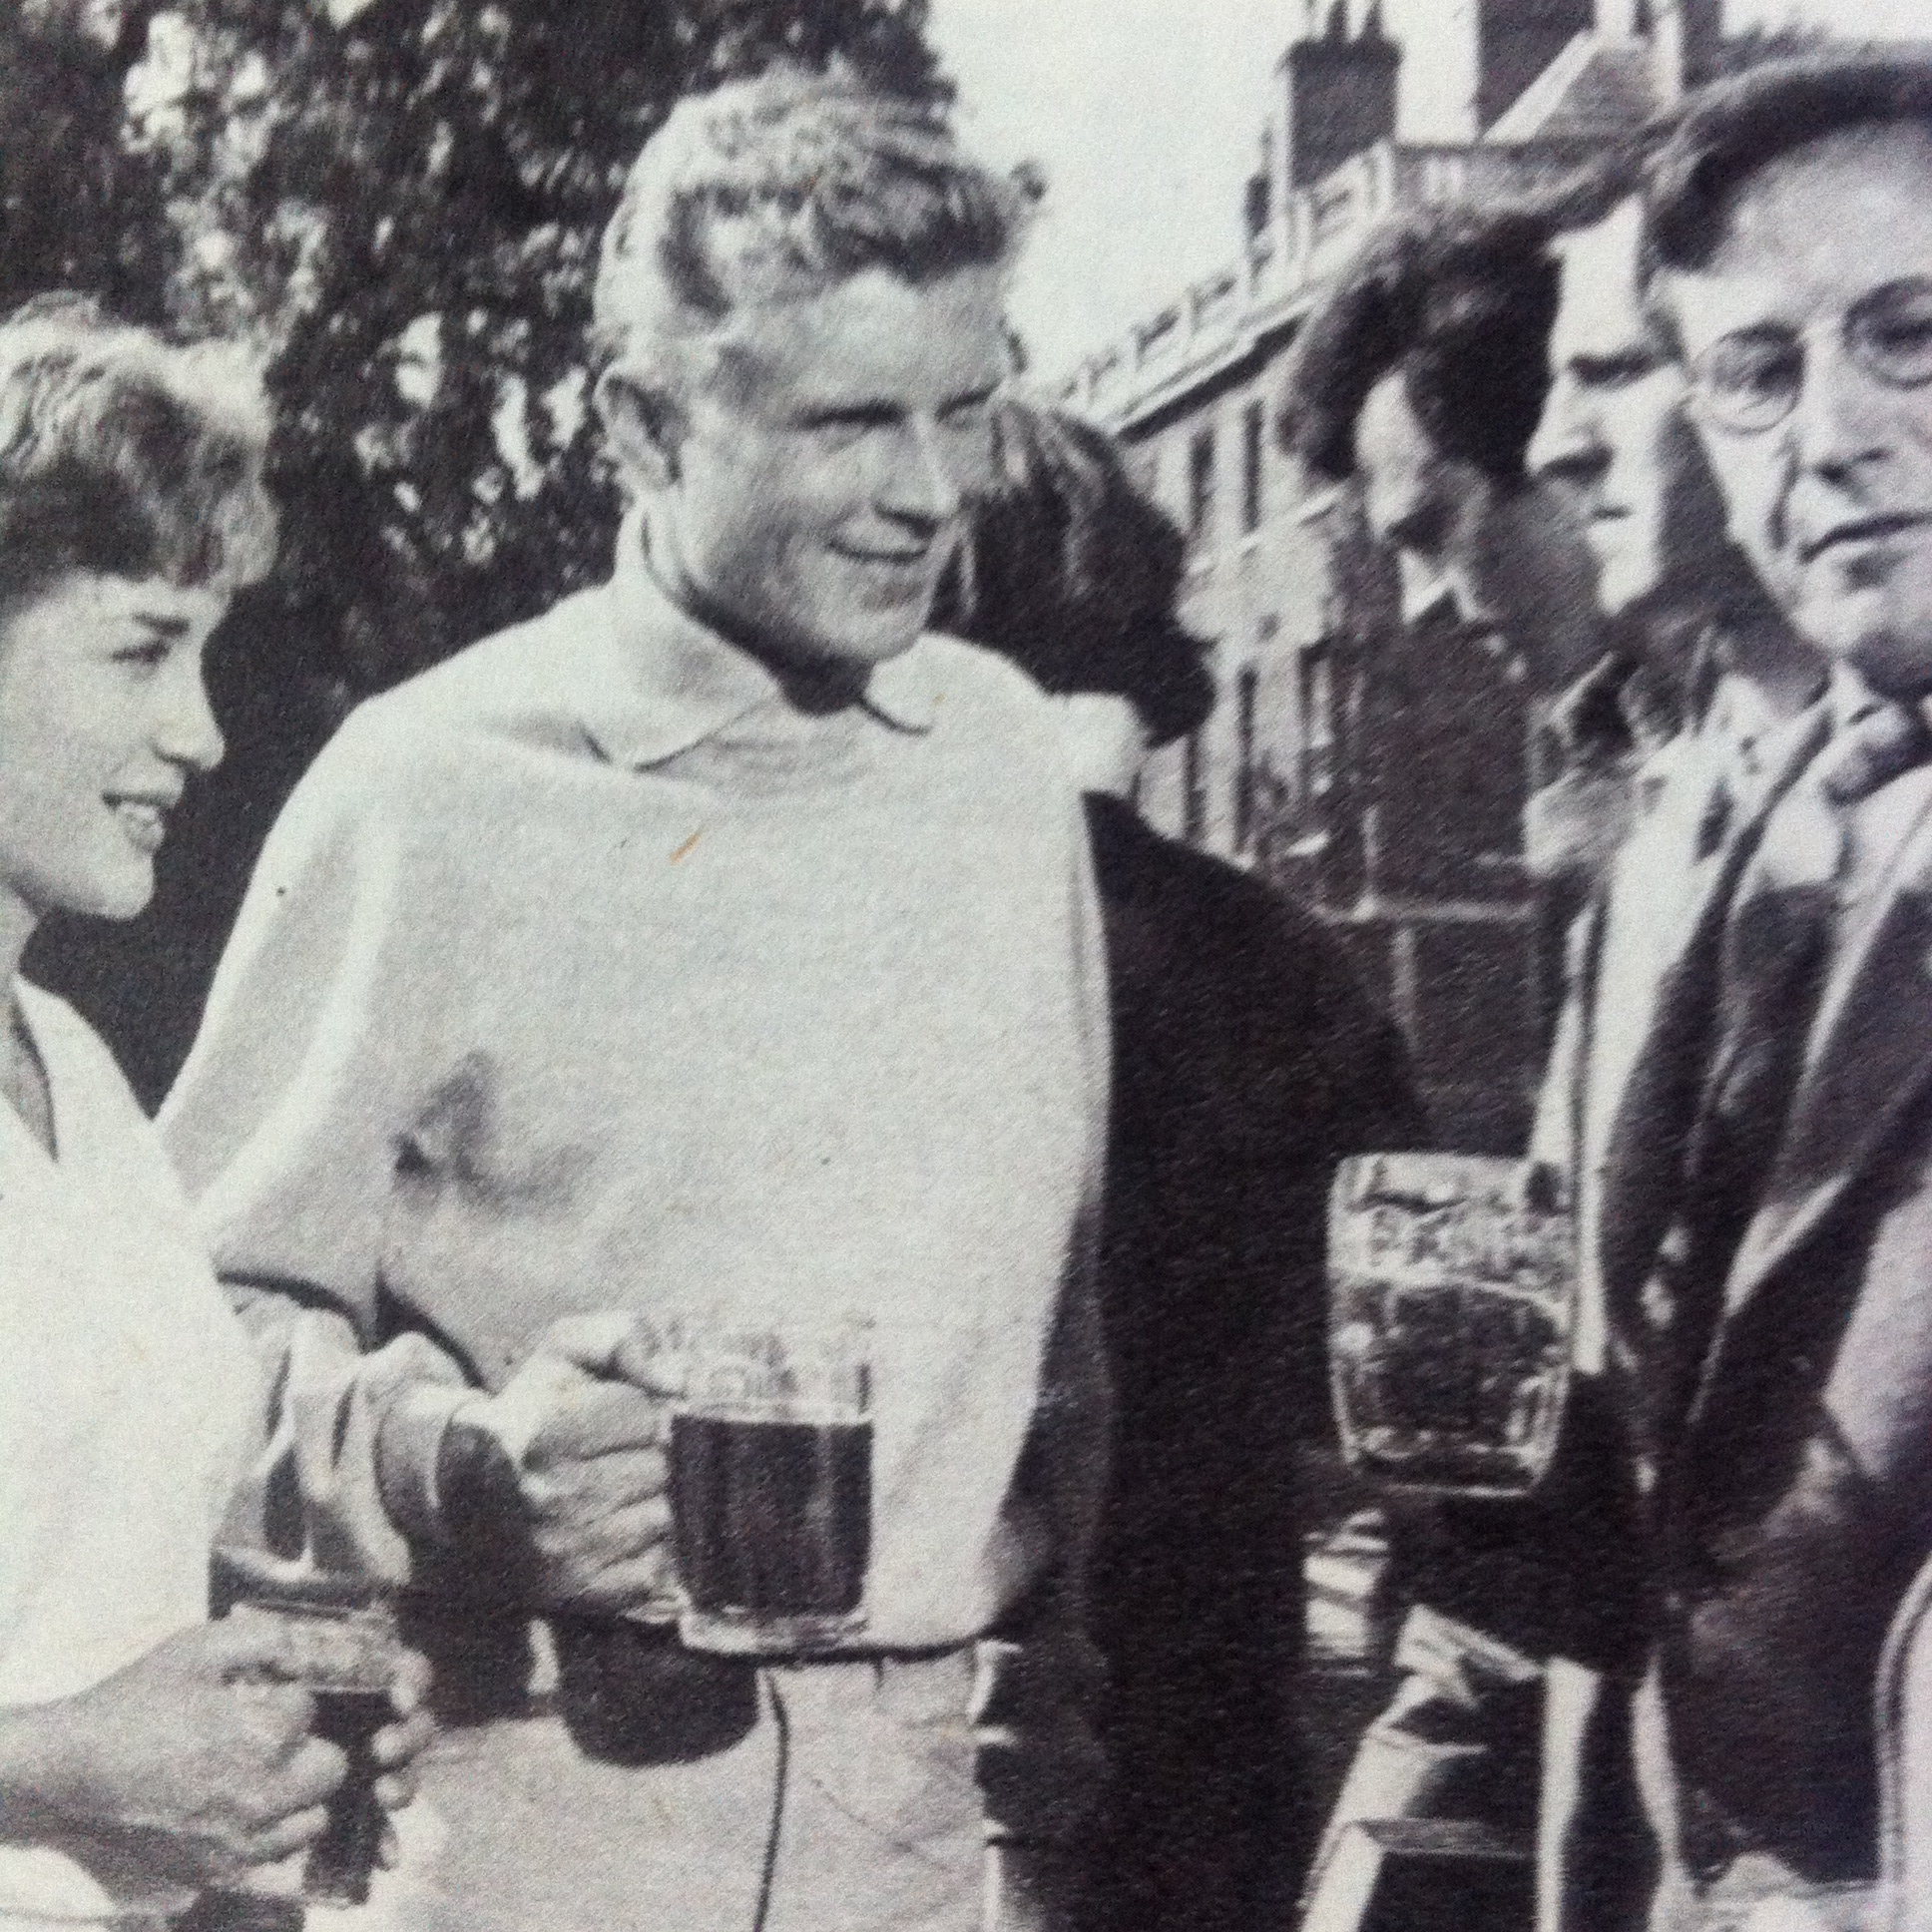 Eric Barker, Hardy Krüger, and Sylvia Syms in Bachelor of Hearts (1958)